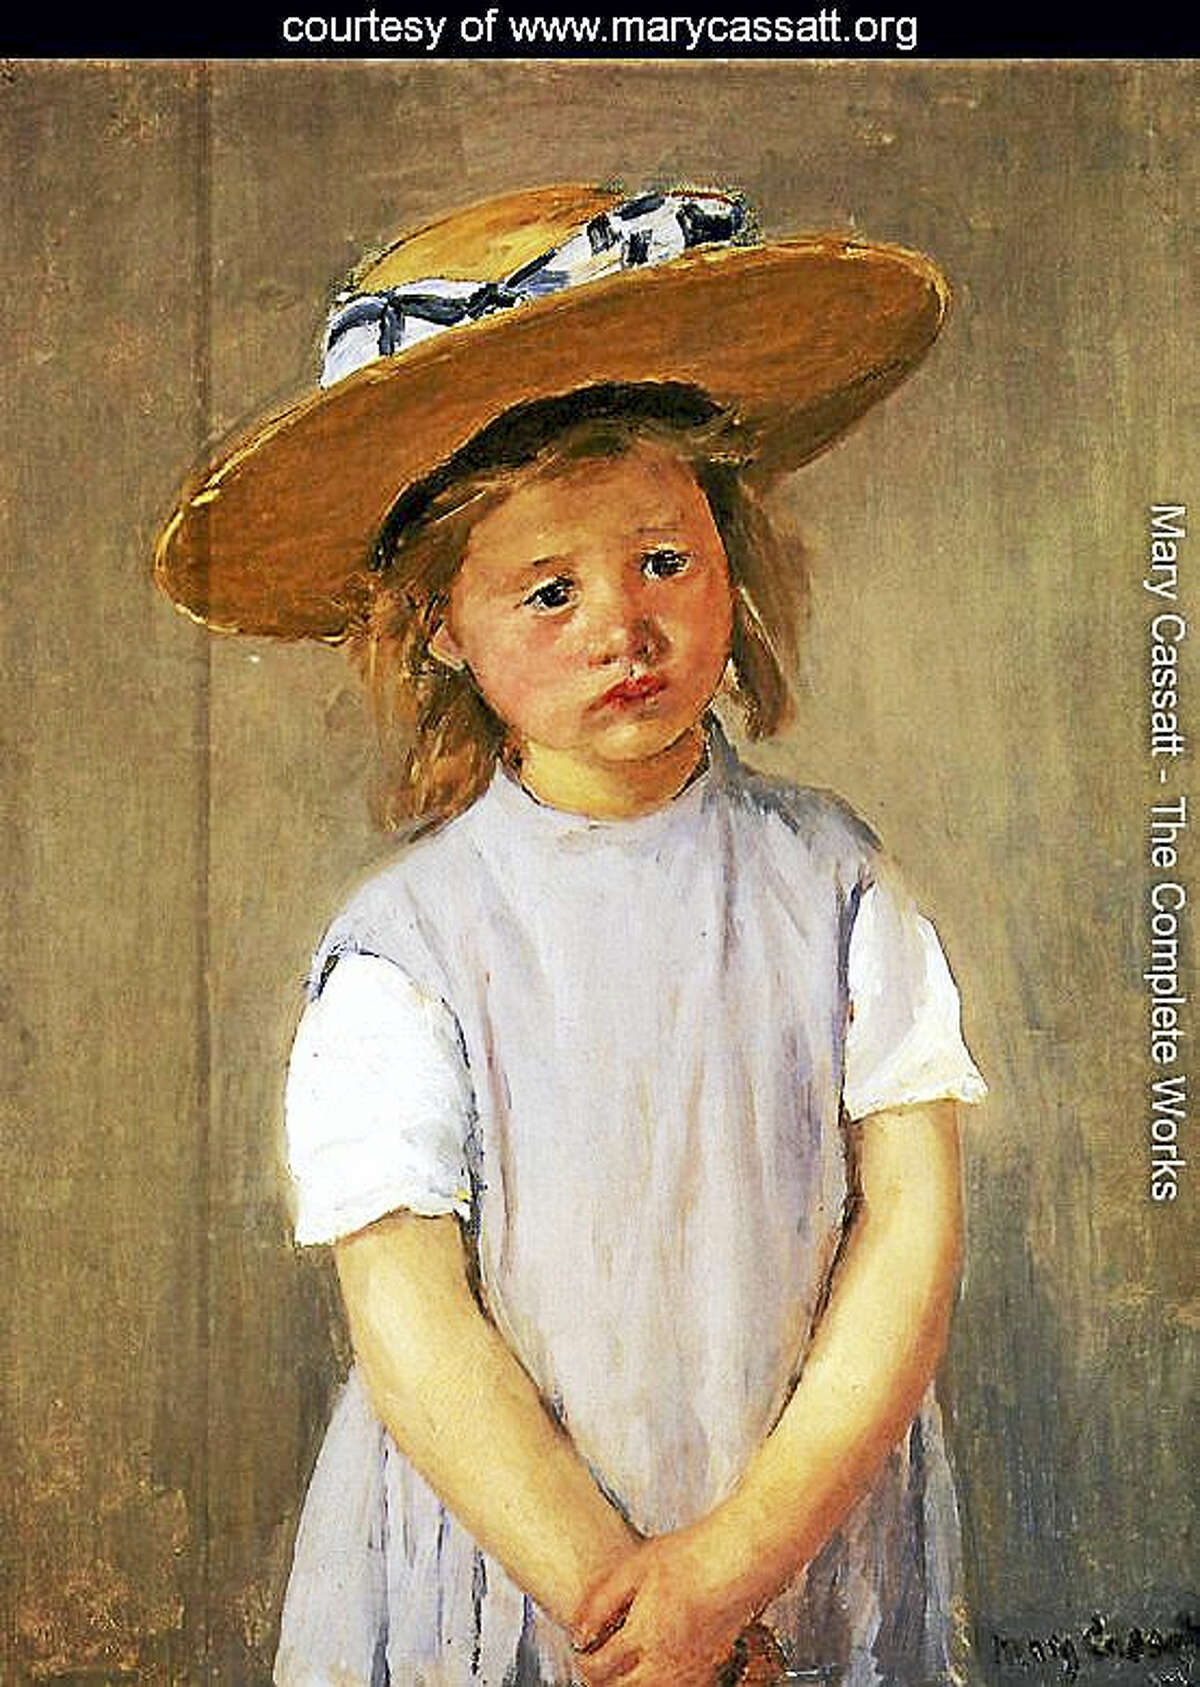 Contributed photoChild in a Straw Hat by Mary Cassatt.